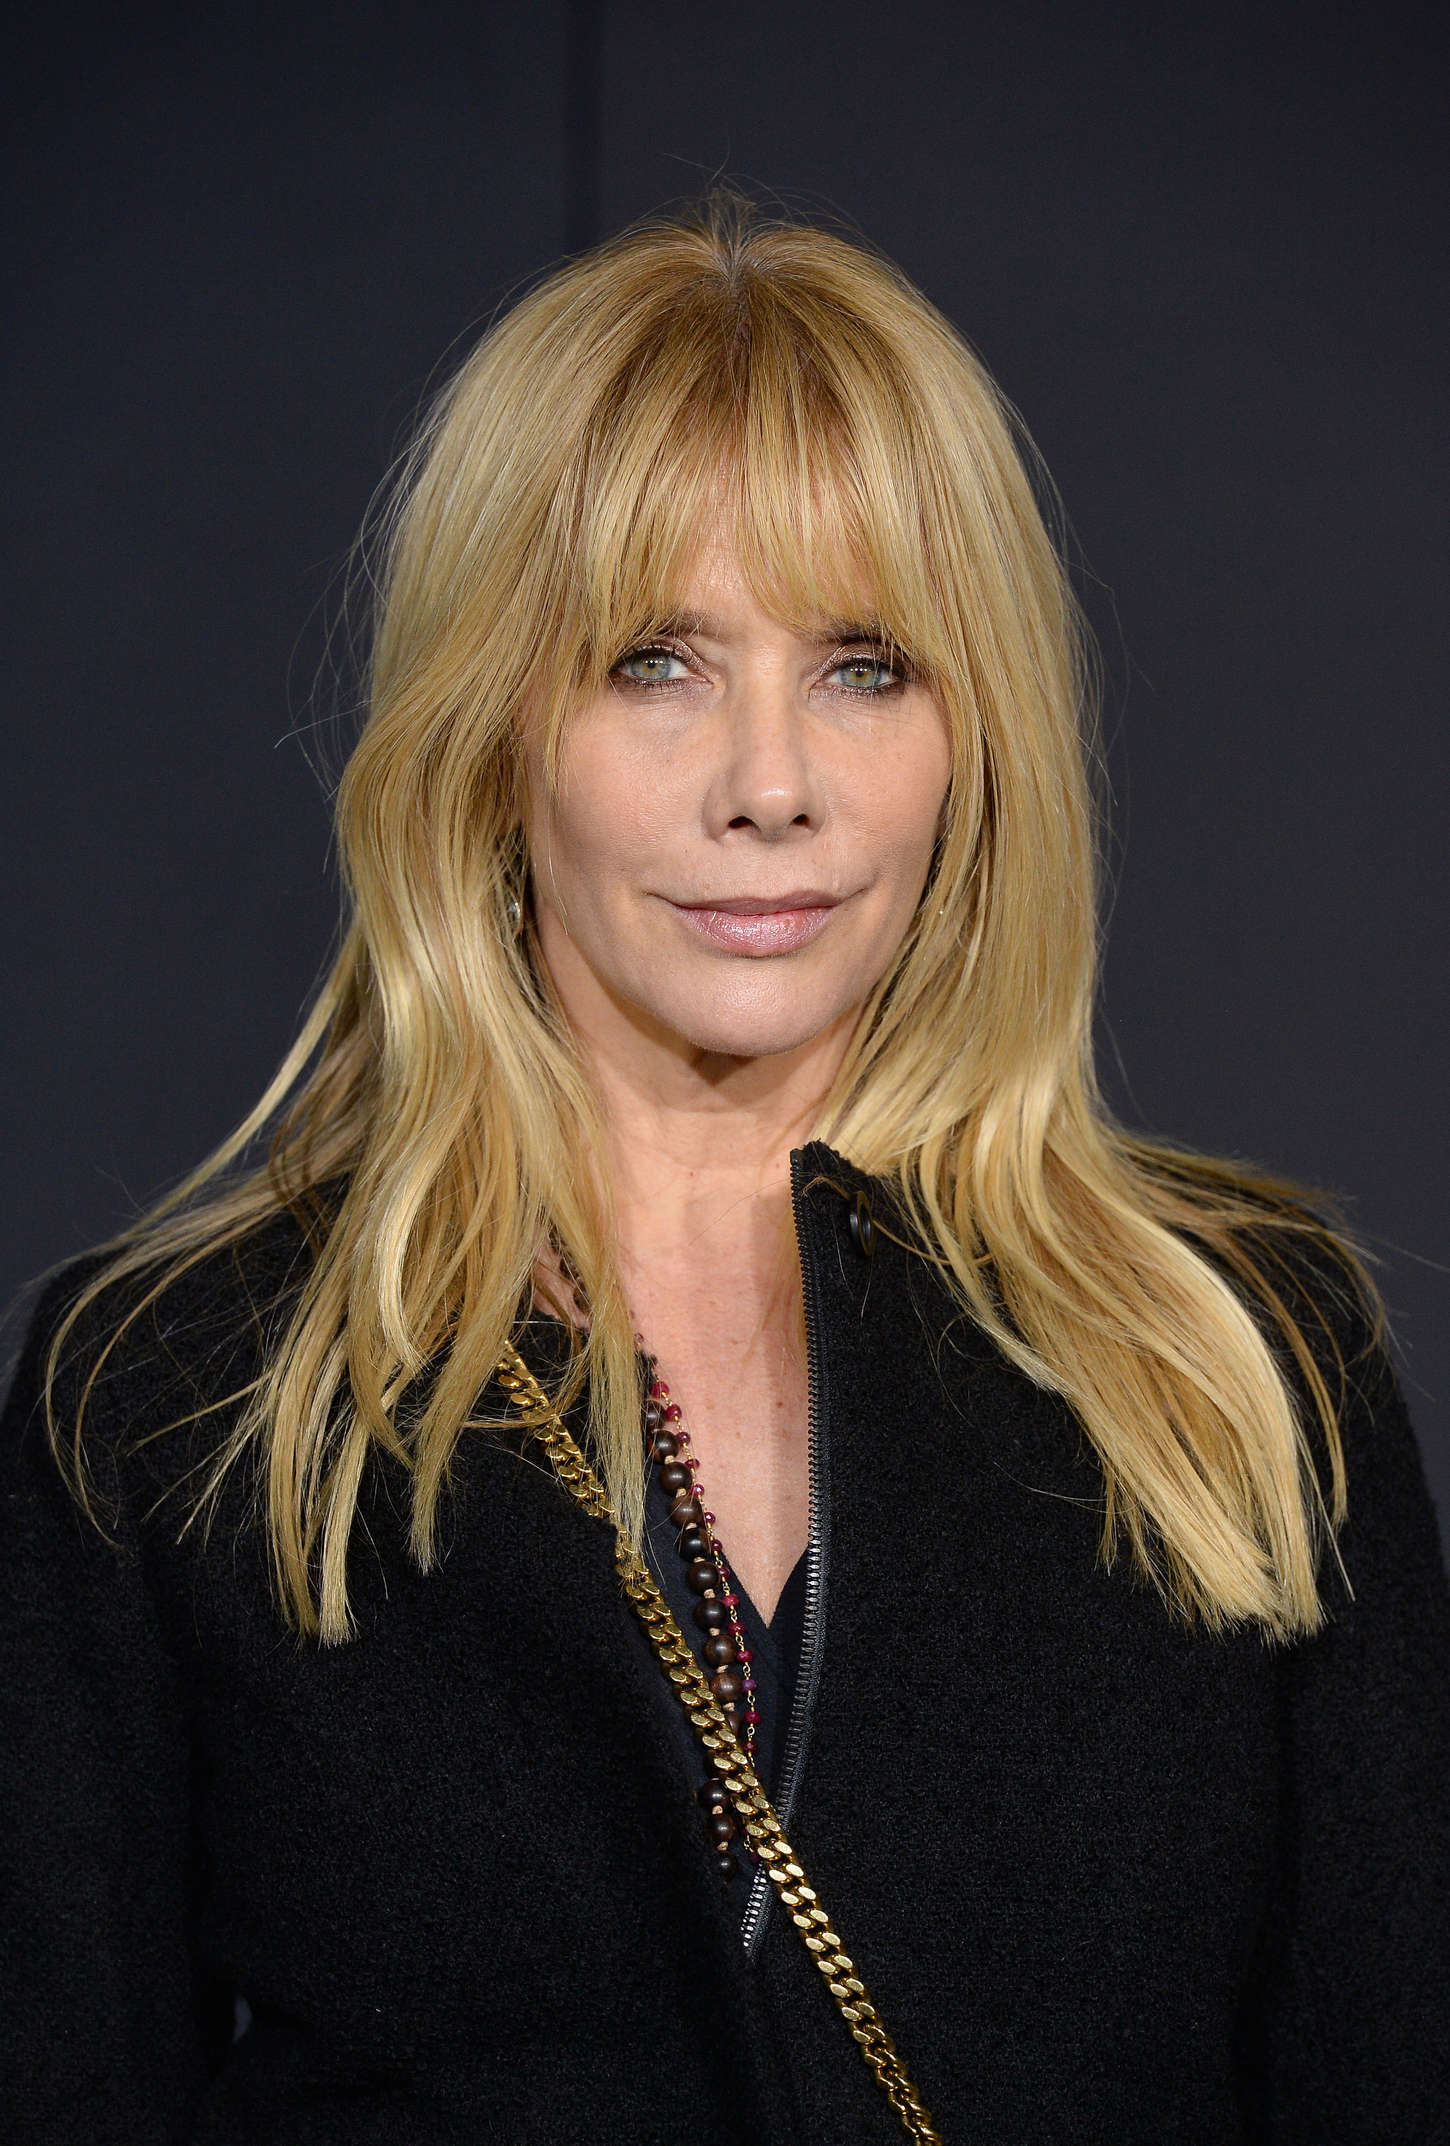 Rosanna Arquette Creed Premiere in Westwood